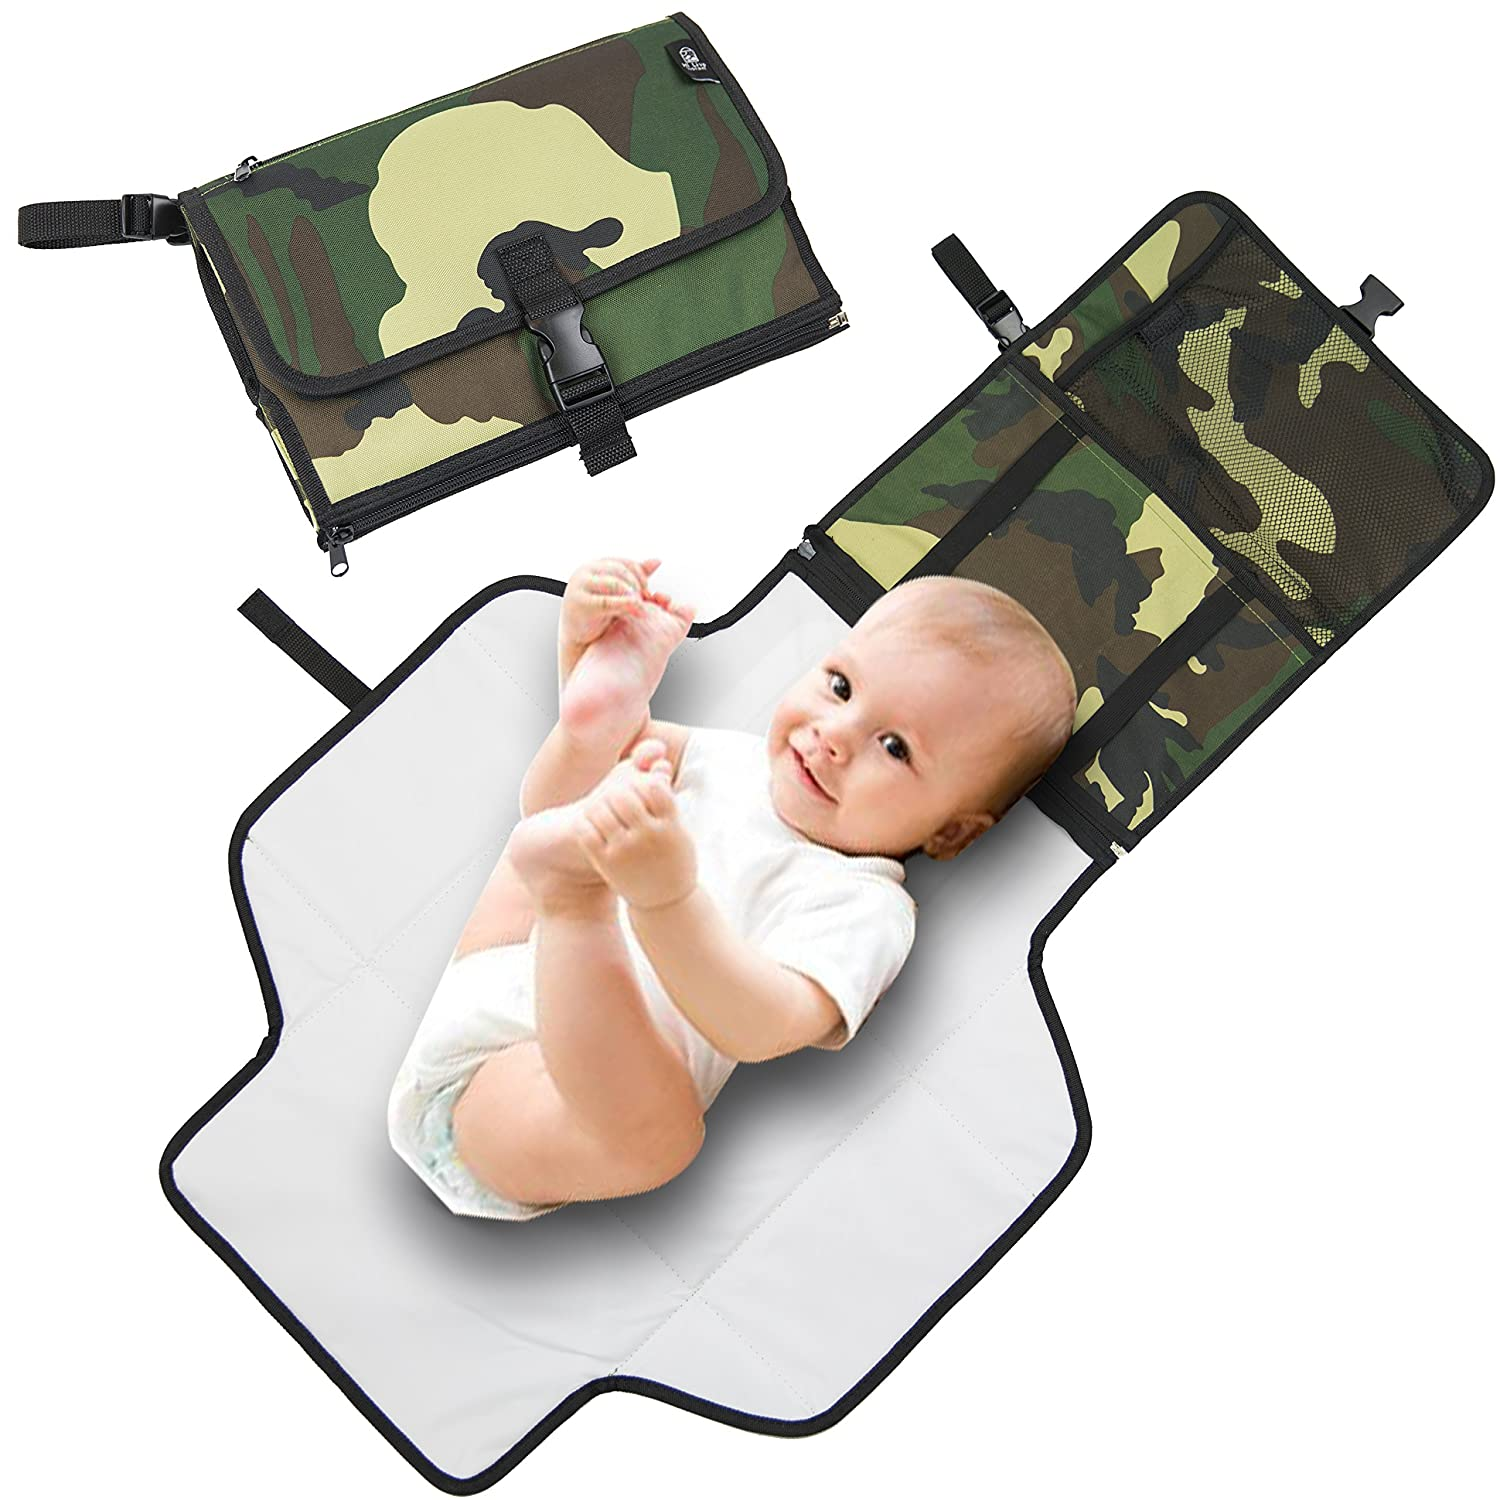 HI Live Vibrant Portable Changing Station - Wipeable and Portable Design - Fits Disposable Pads for Light and Easy Travel - Plush Solid Folding Case for Your Baby - Infant Kit 90-OIVV-468E